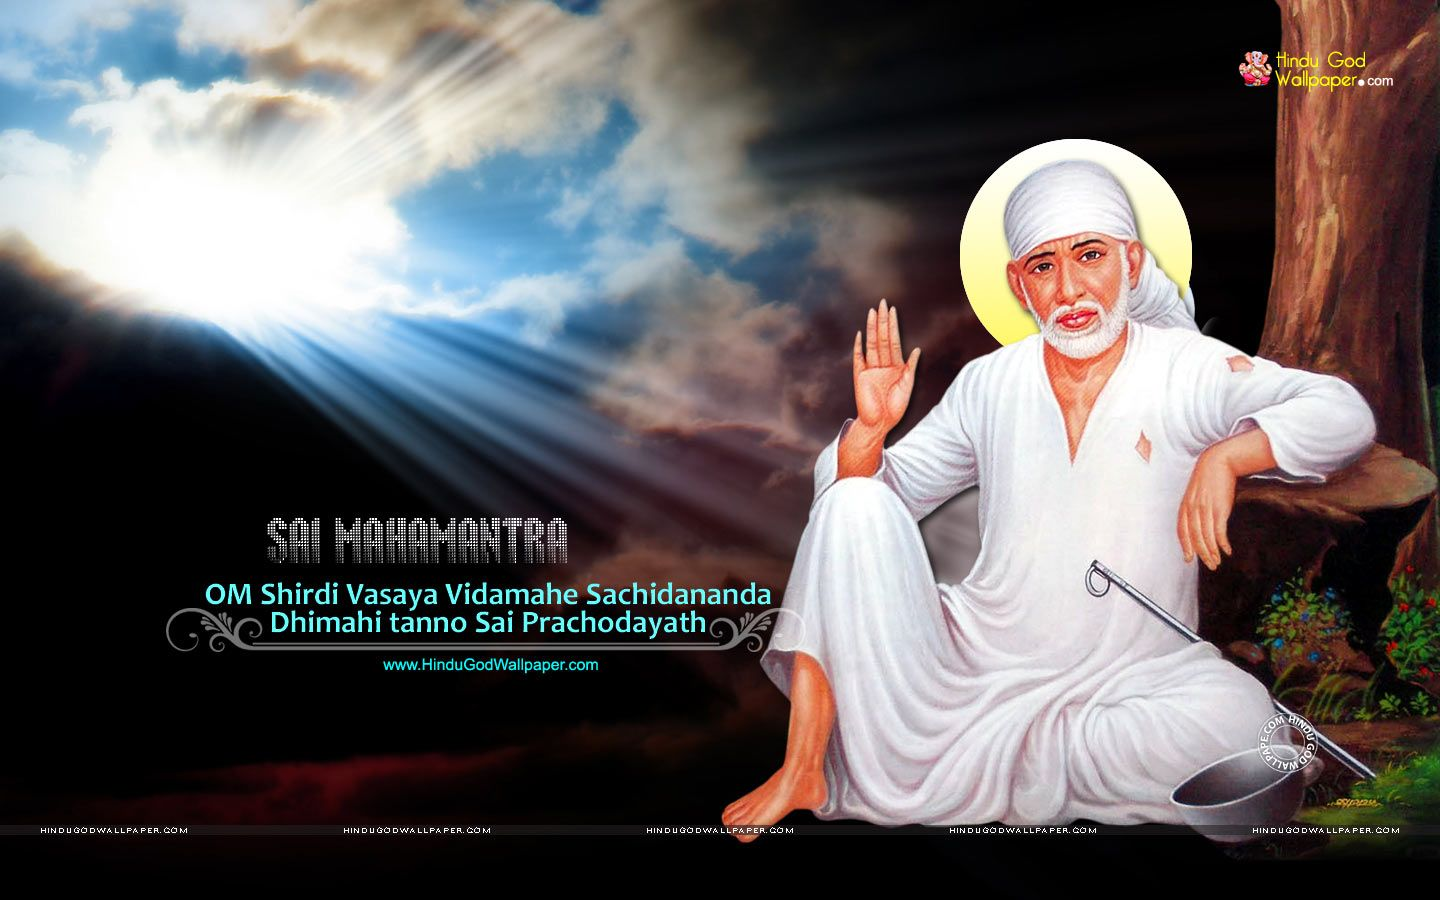 Sai Baba Desktop Background Wallpaper With Images Desktop